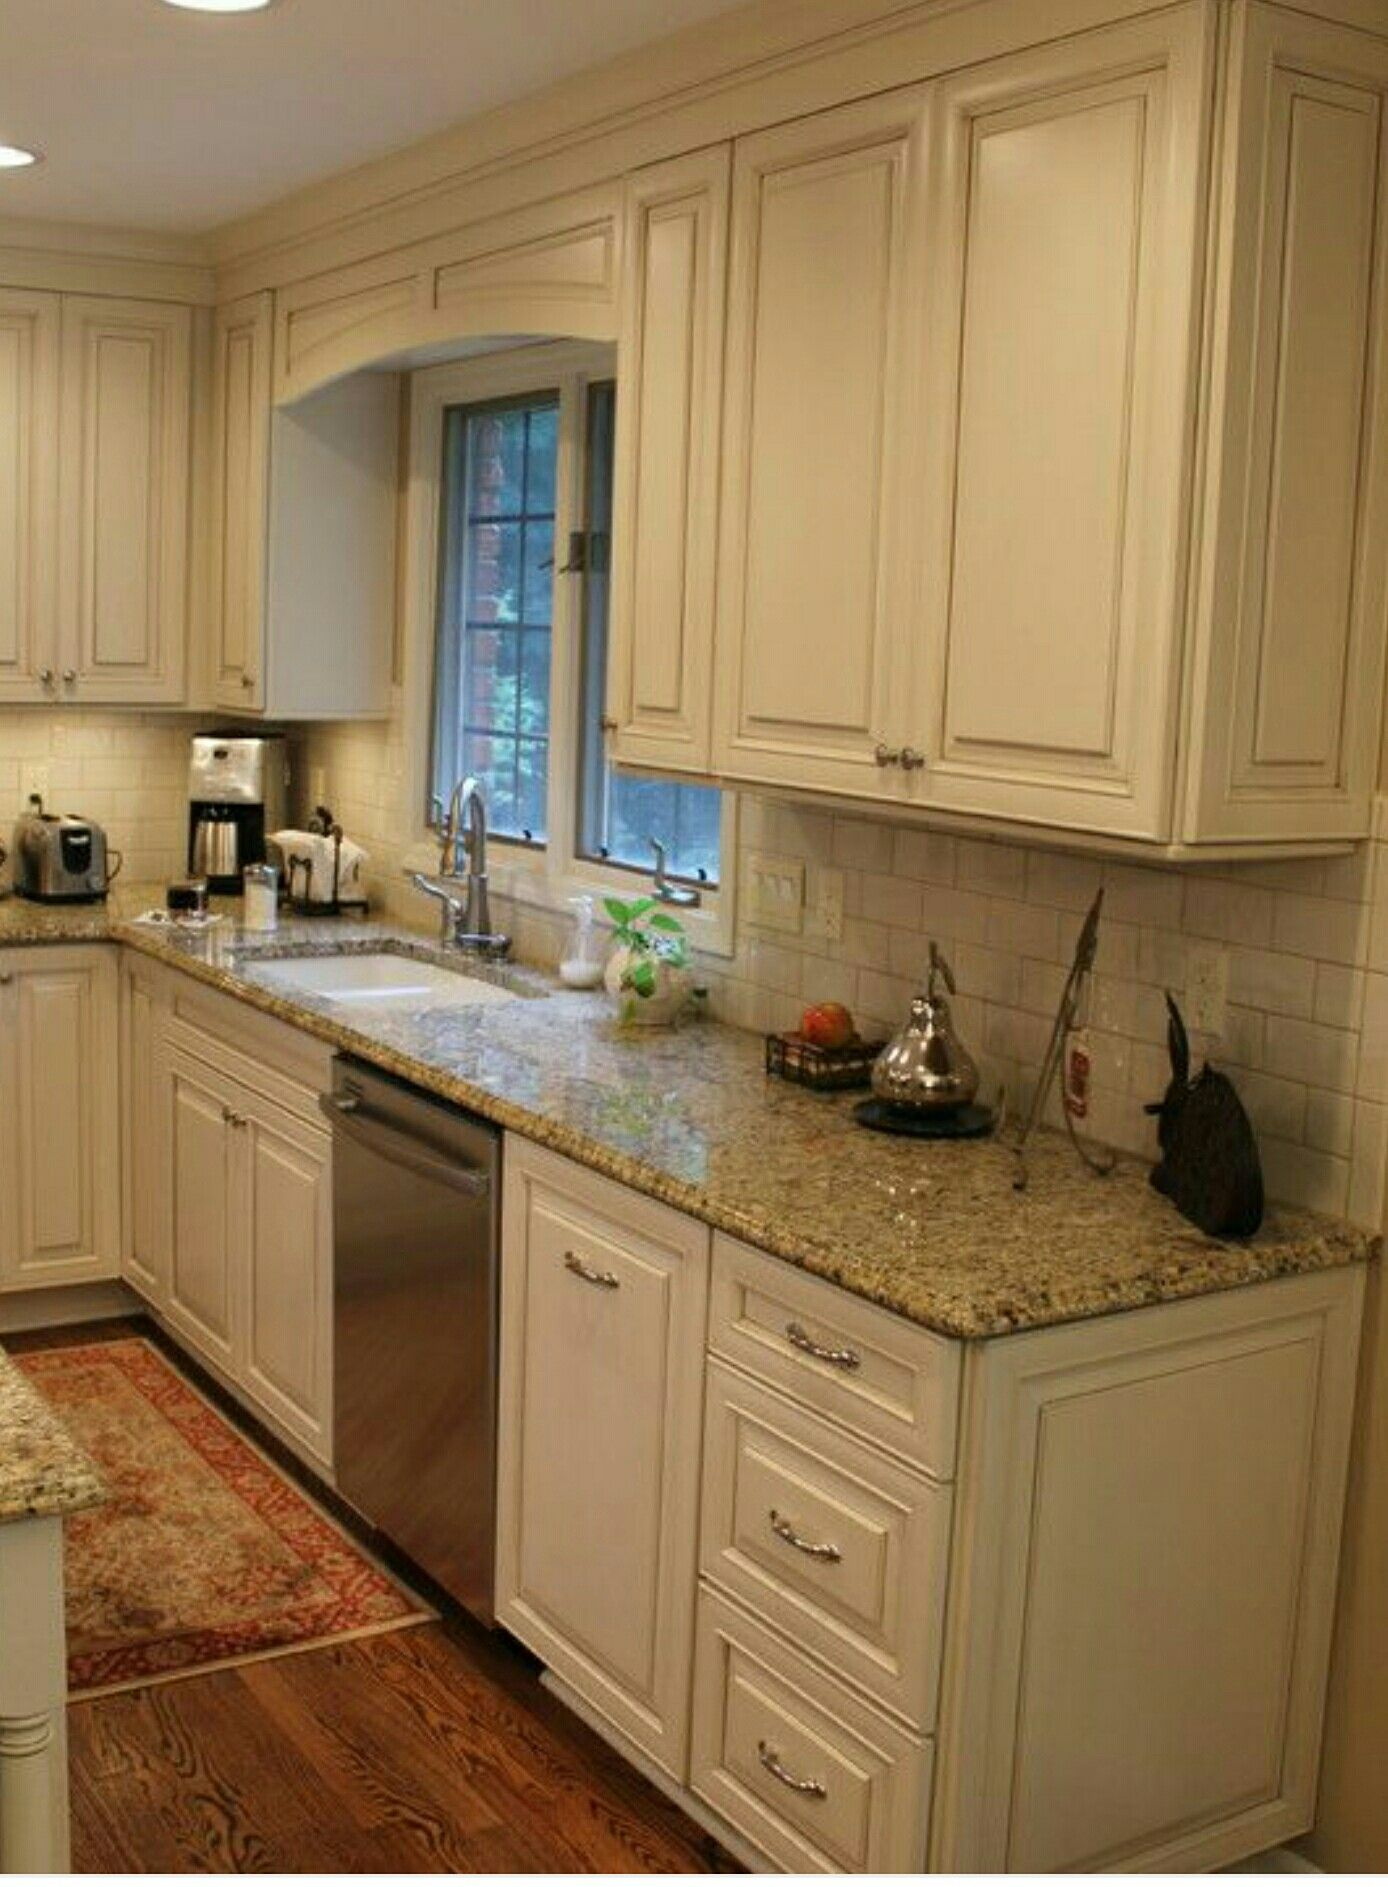 Best Kitchen Gallery: White Cabi S Subway Tile Beige Granite Countertops Kitchen of Beige And White Kitchens on rachelxblog.com